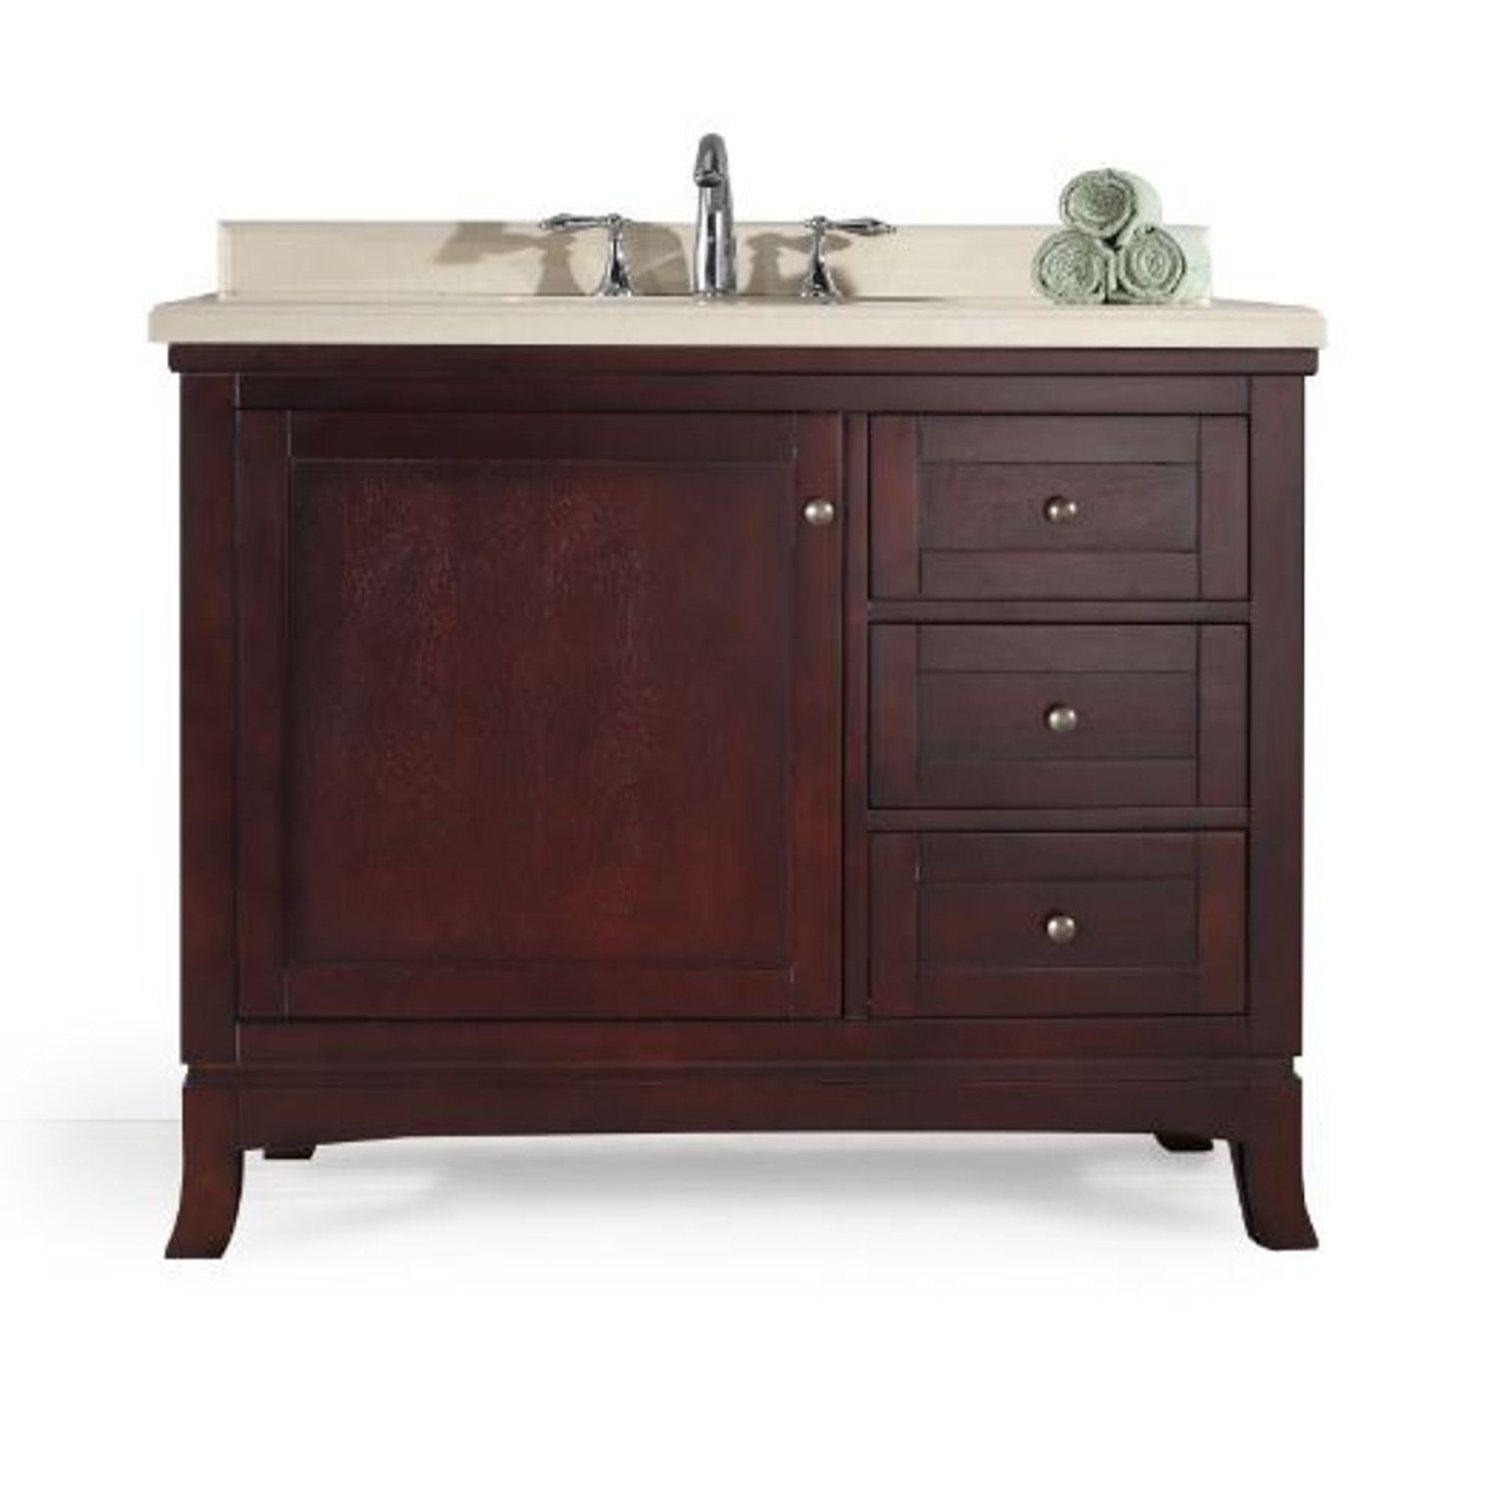 New Plan Save Solid Counter Almond Marble And Stain Vanity In Tobacco Stain Savings 1000